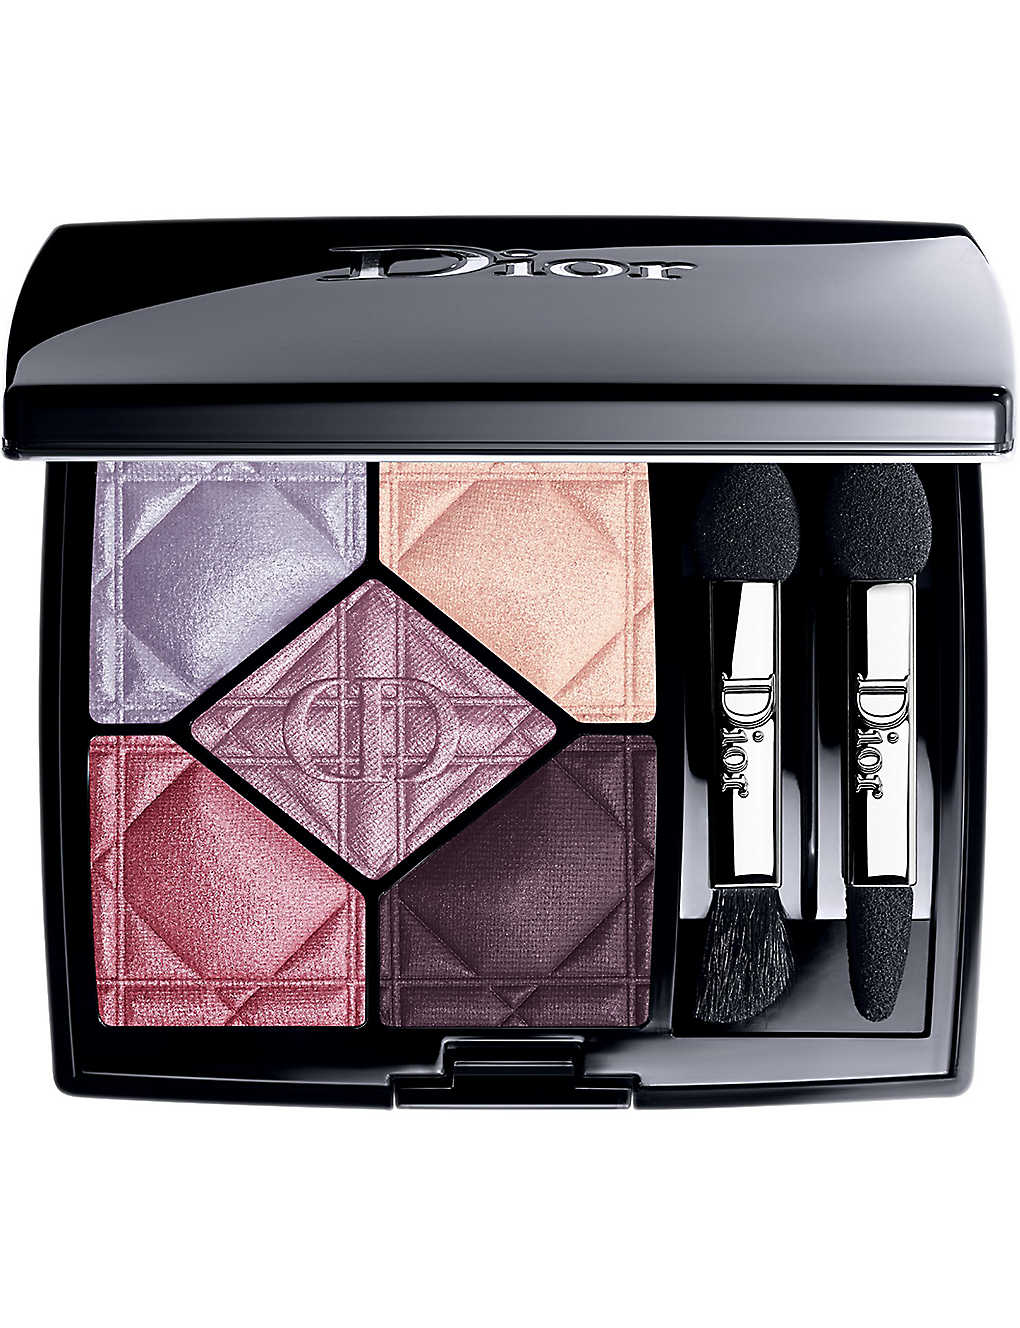 DIOR: 5 couleurs eyeshadow palette